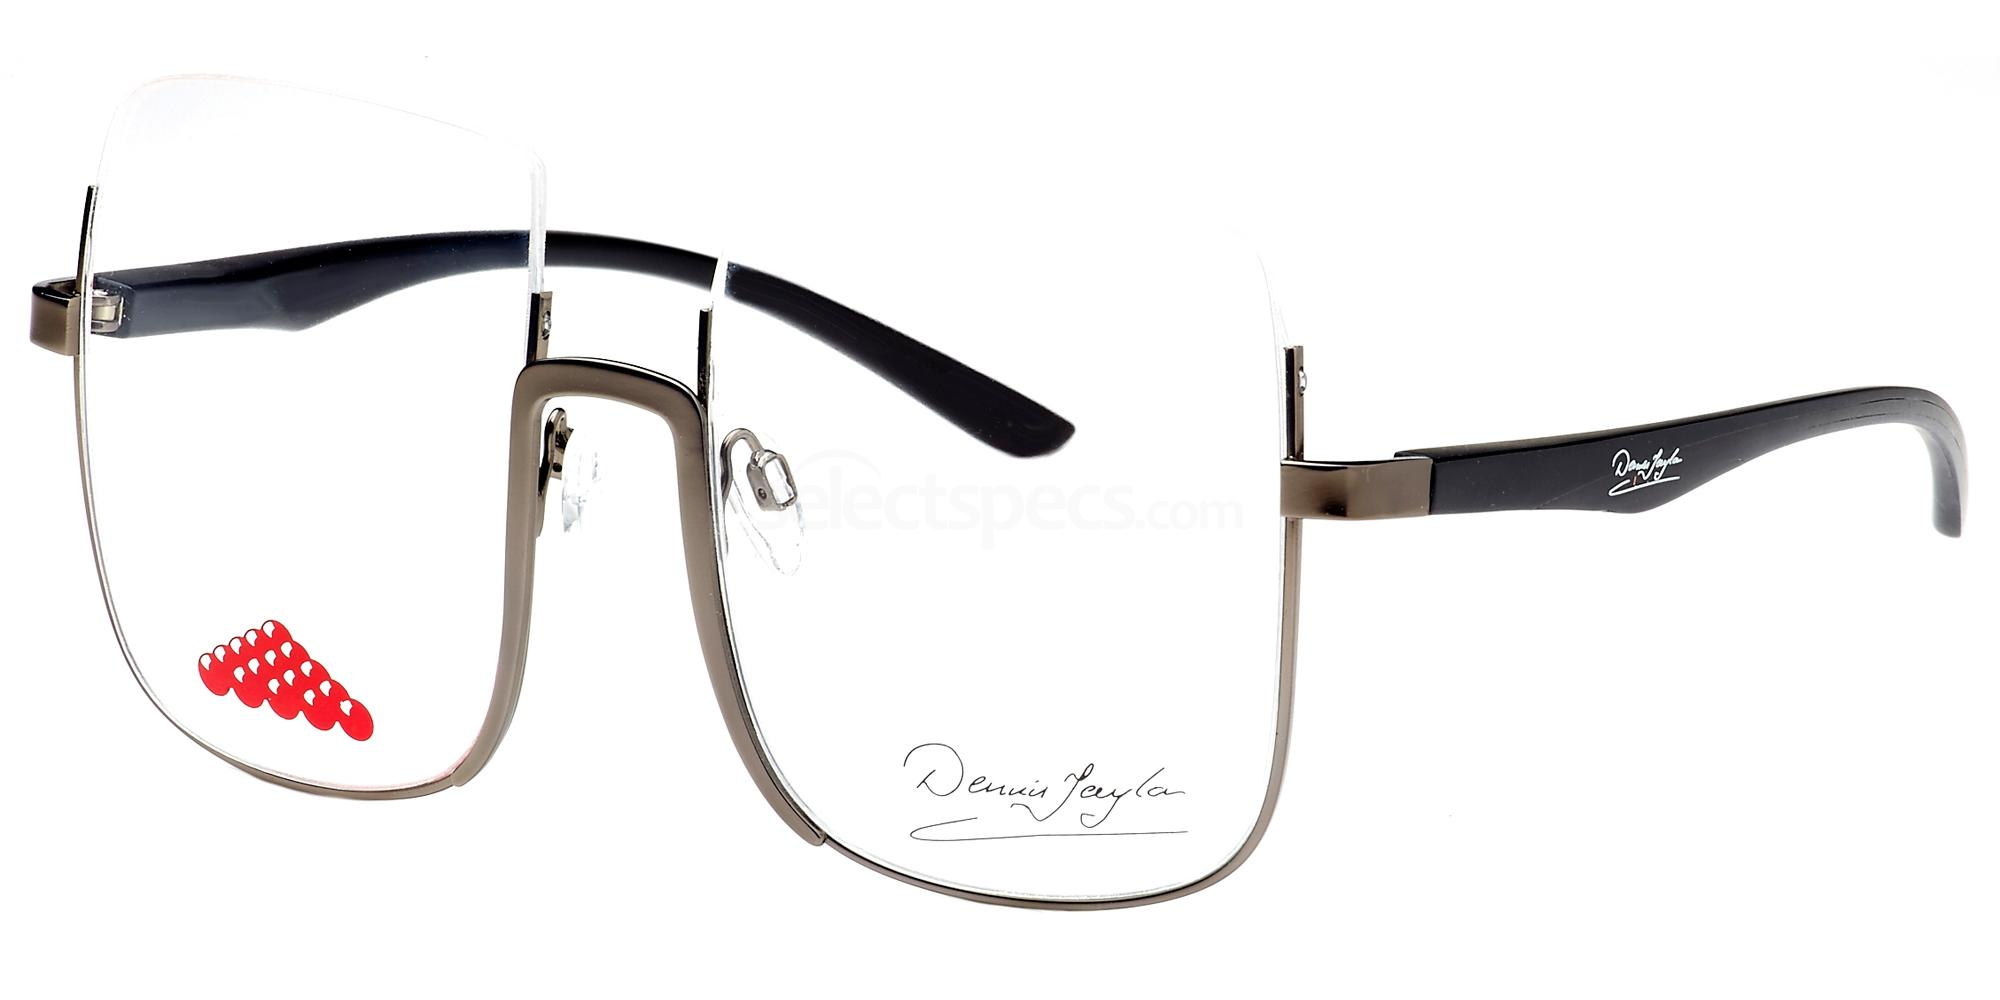 Dennis Taylor Glasses available at SelectSpecs